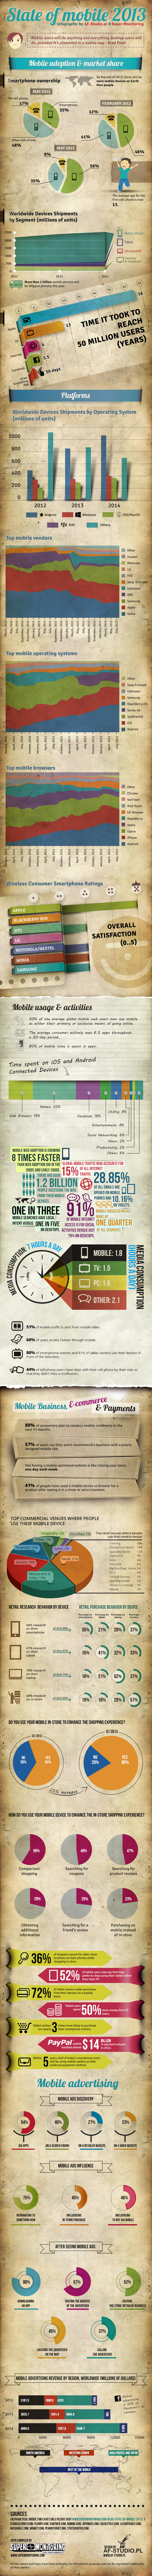 Infographic-2013-Mobile-Growth-Statistics-Large-1